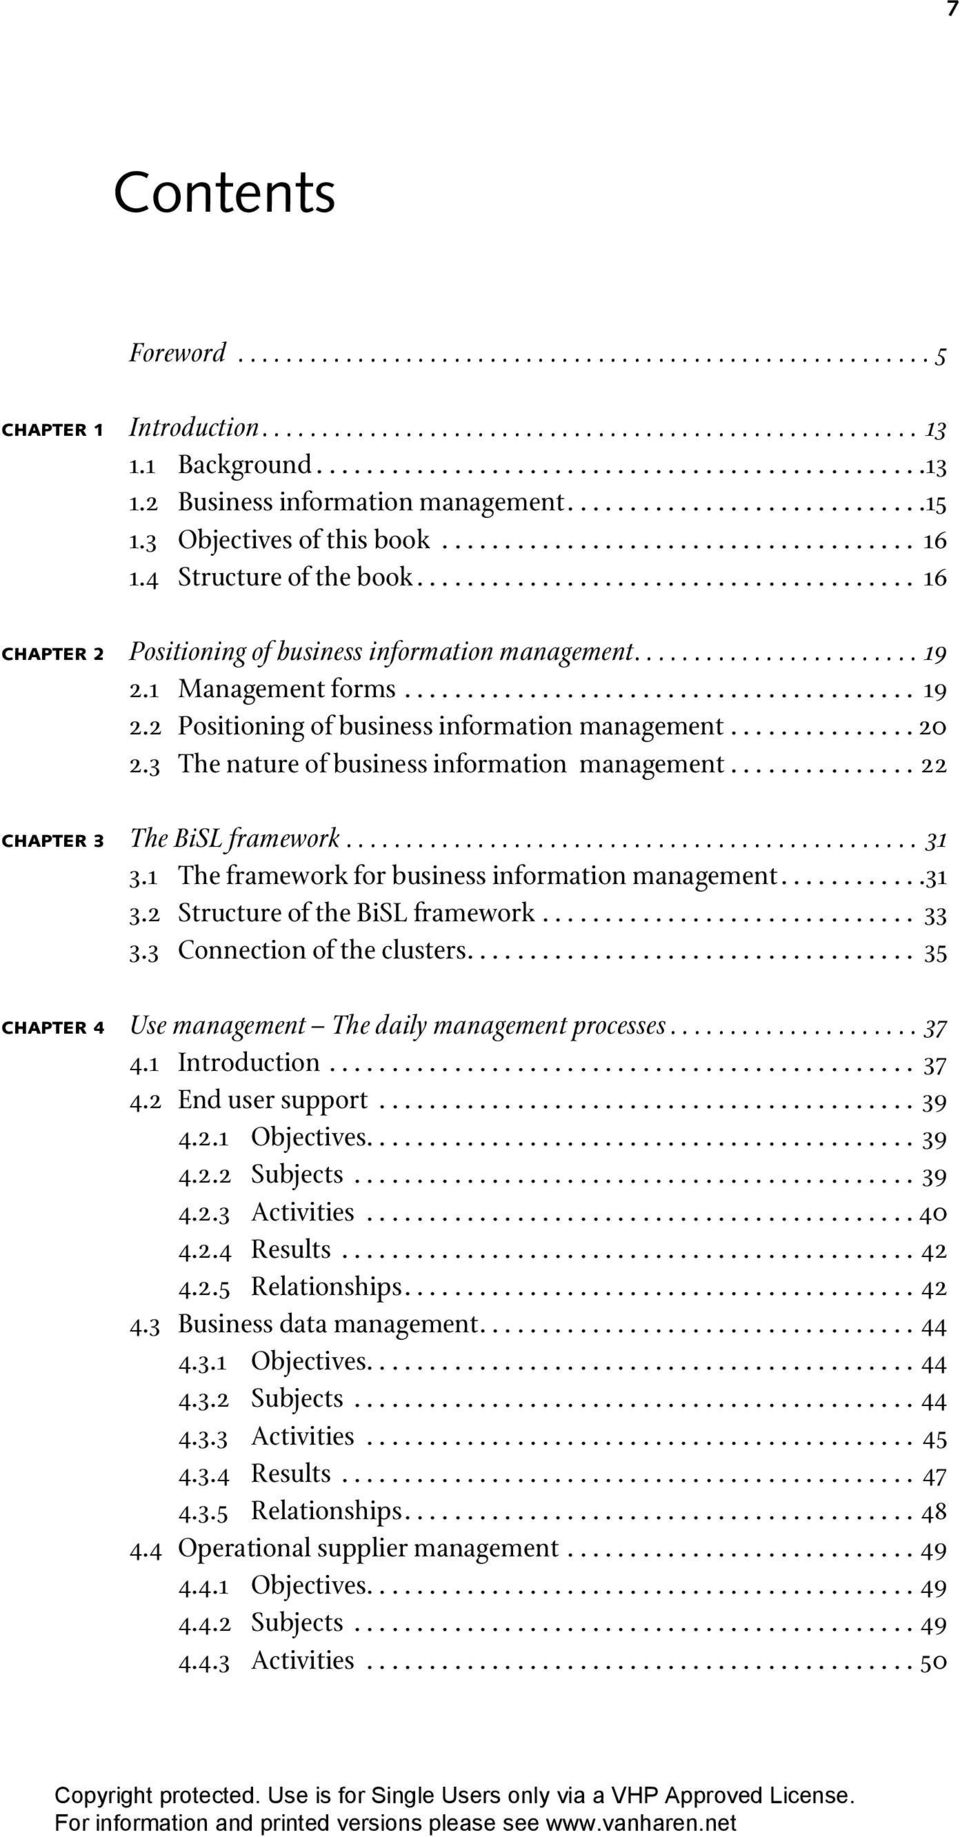 ....................... 19 2.1 Management forms......................................... 19 2.2 Positioning of business information management............... 20 2.